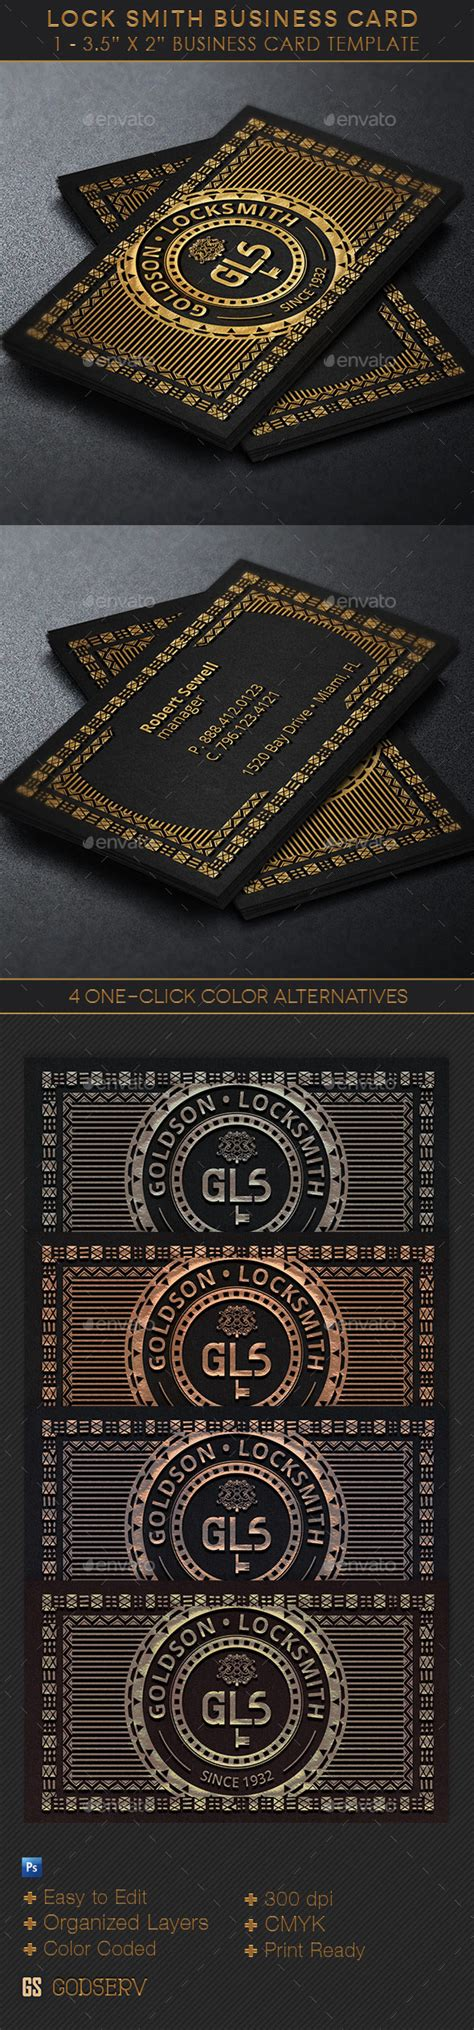 locksmith business cards templates locksmith business card template graphicriver